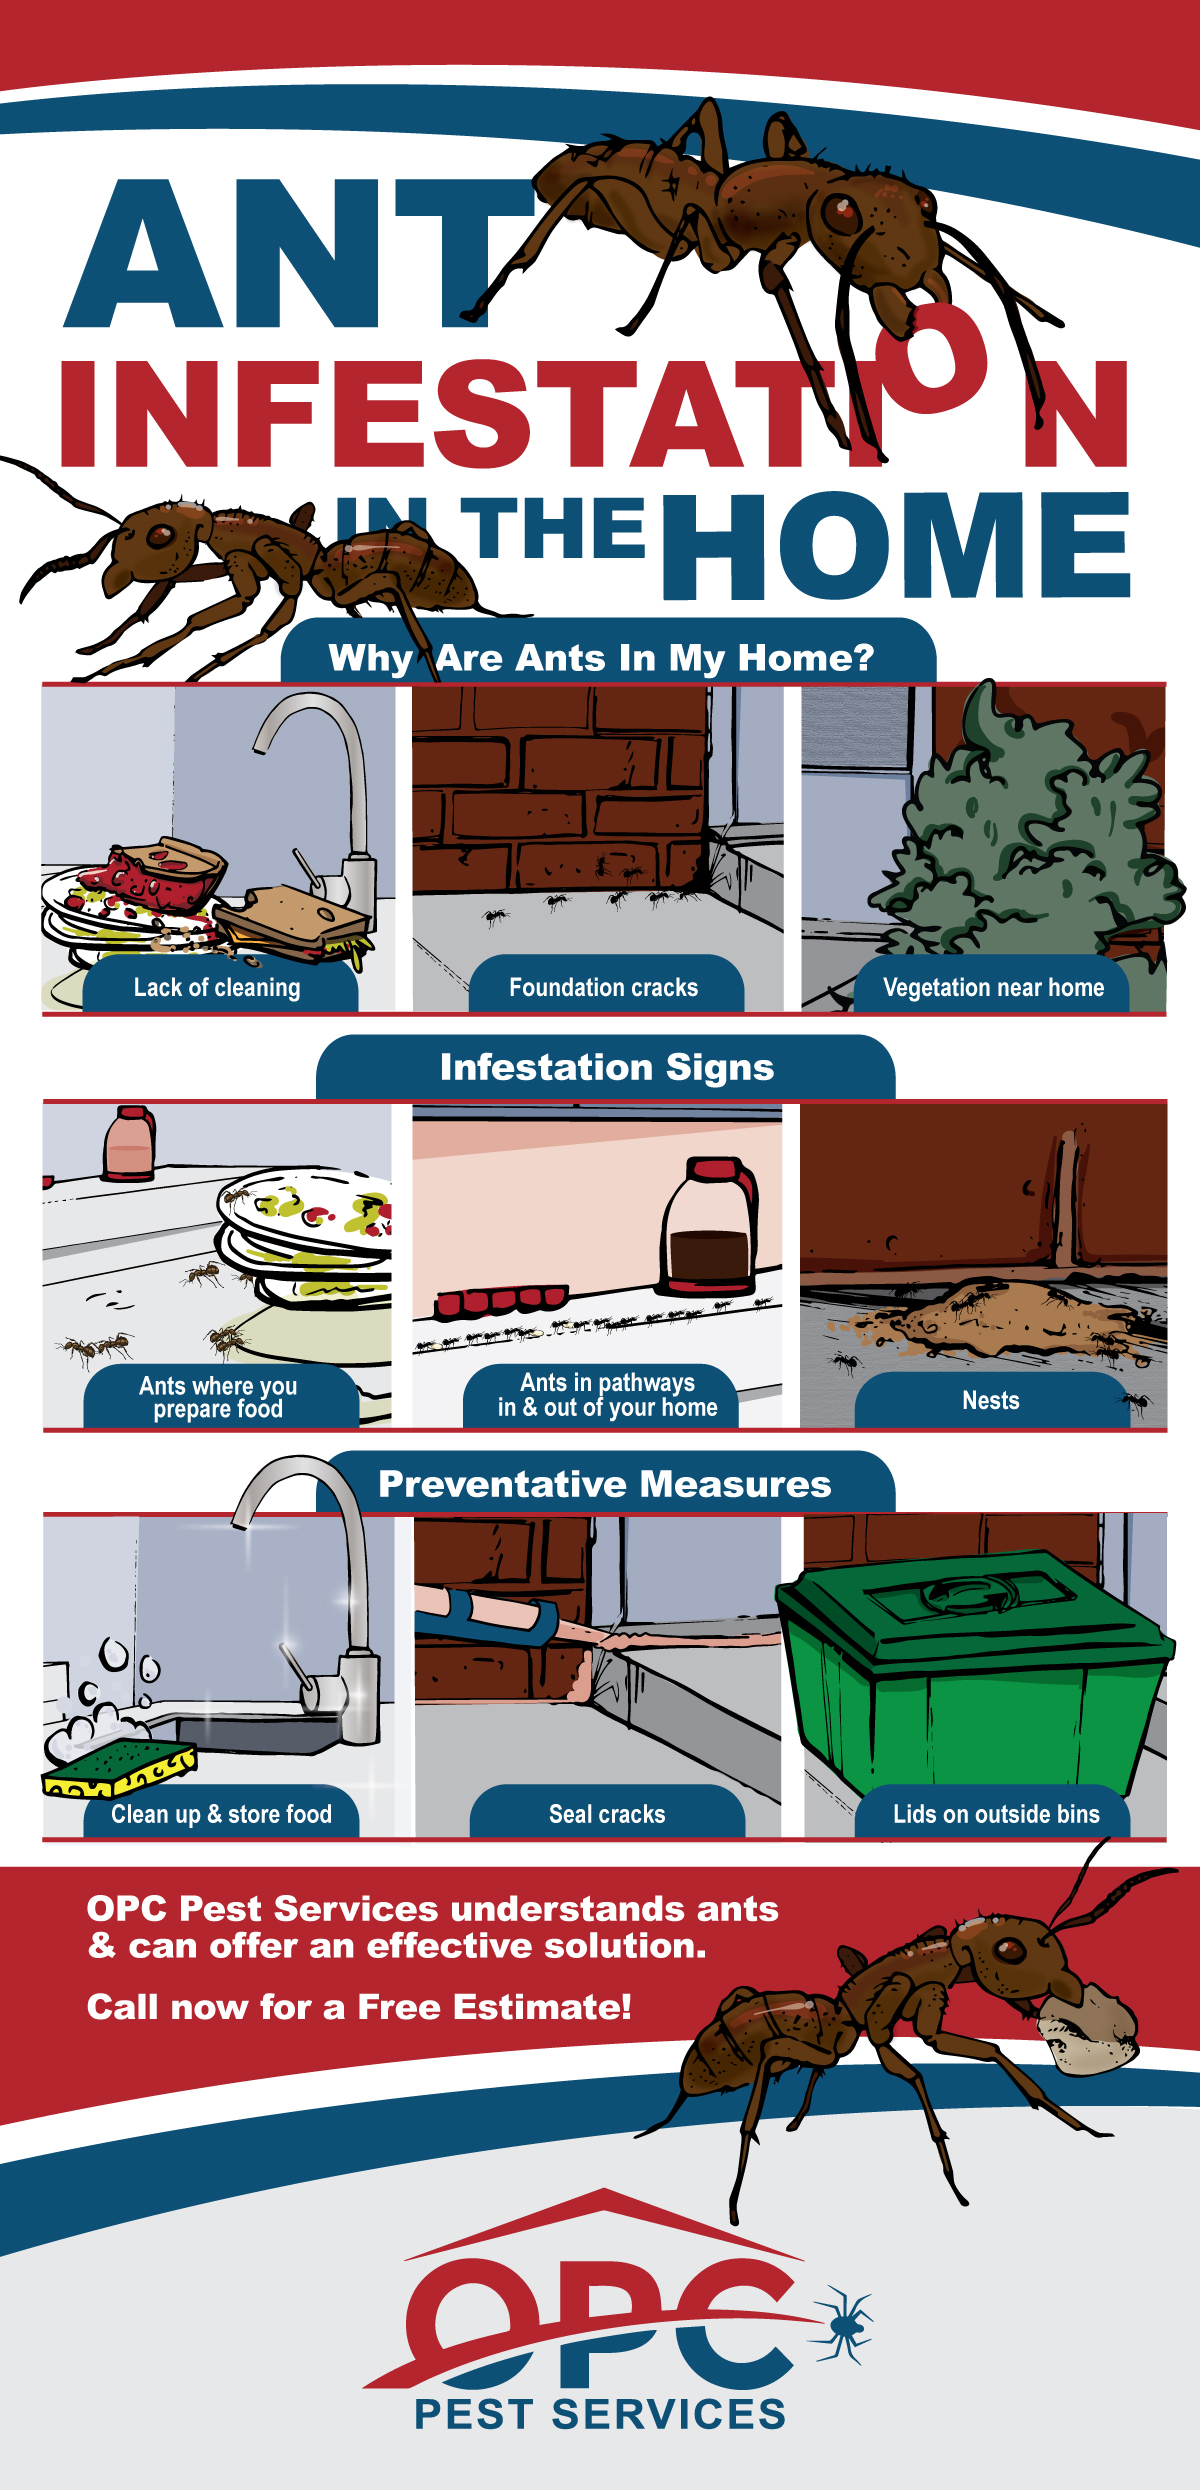 OPC Pest Services - Ant Infestation In The Home Infographic